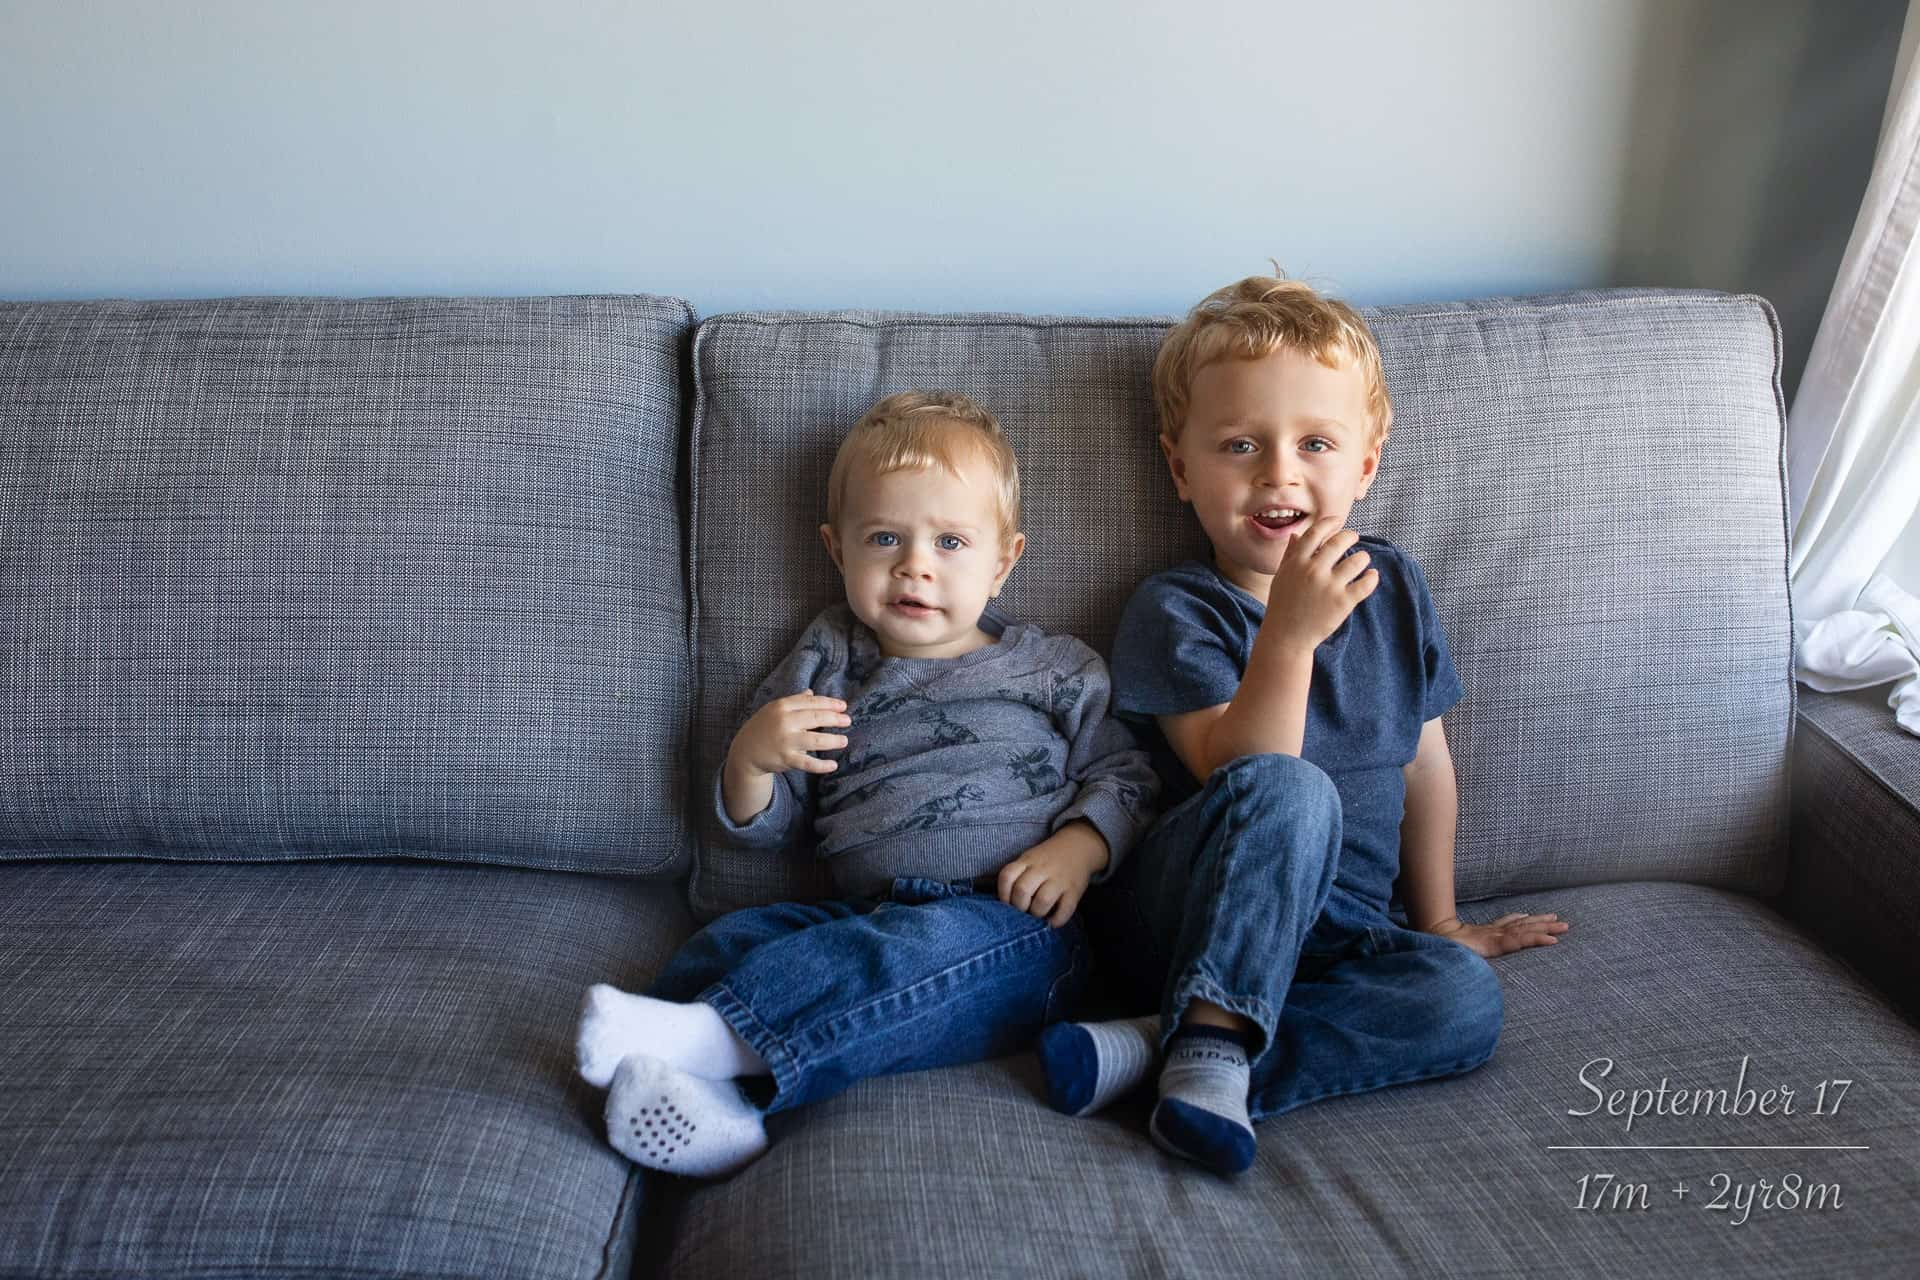 two brothers as toddlers sitting together on the couch